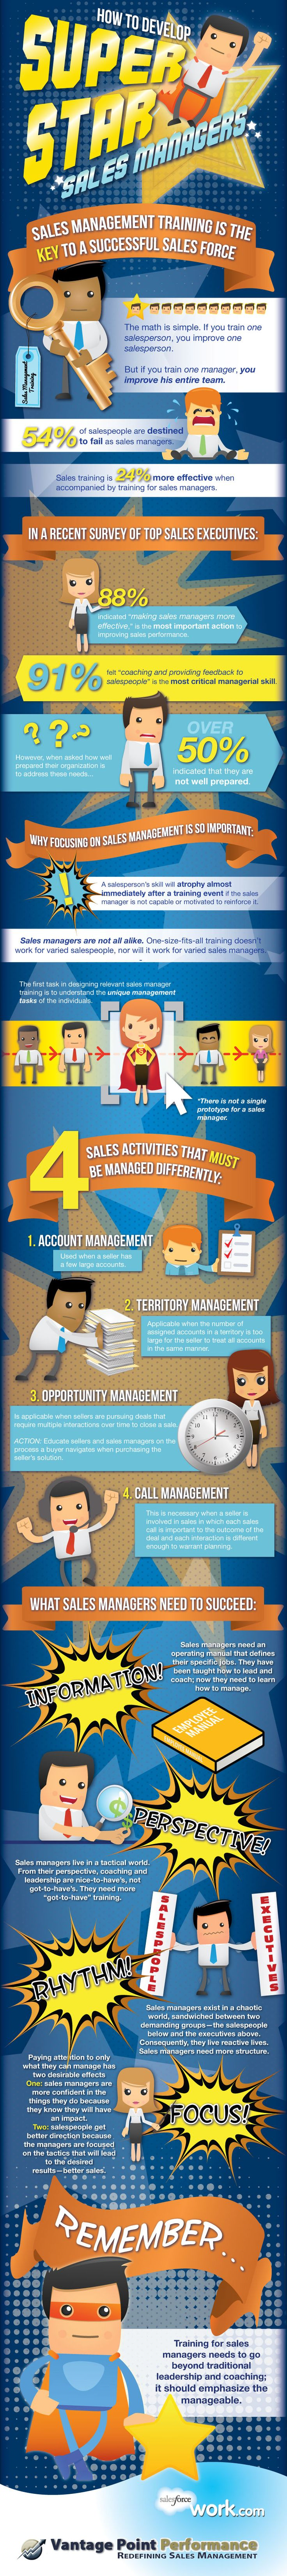 54% of sales people are destined to fail as sales managers.